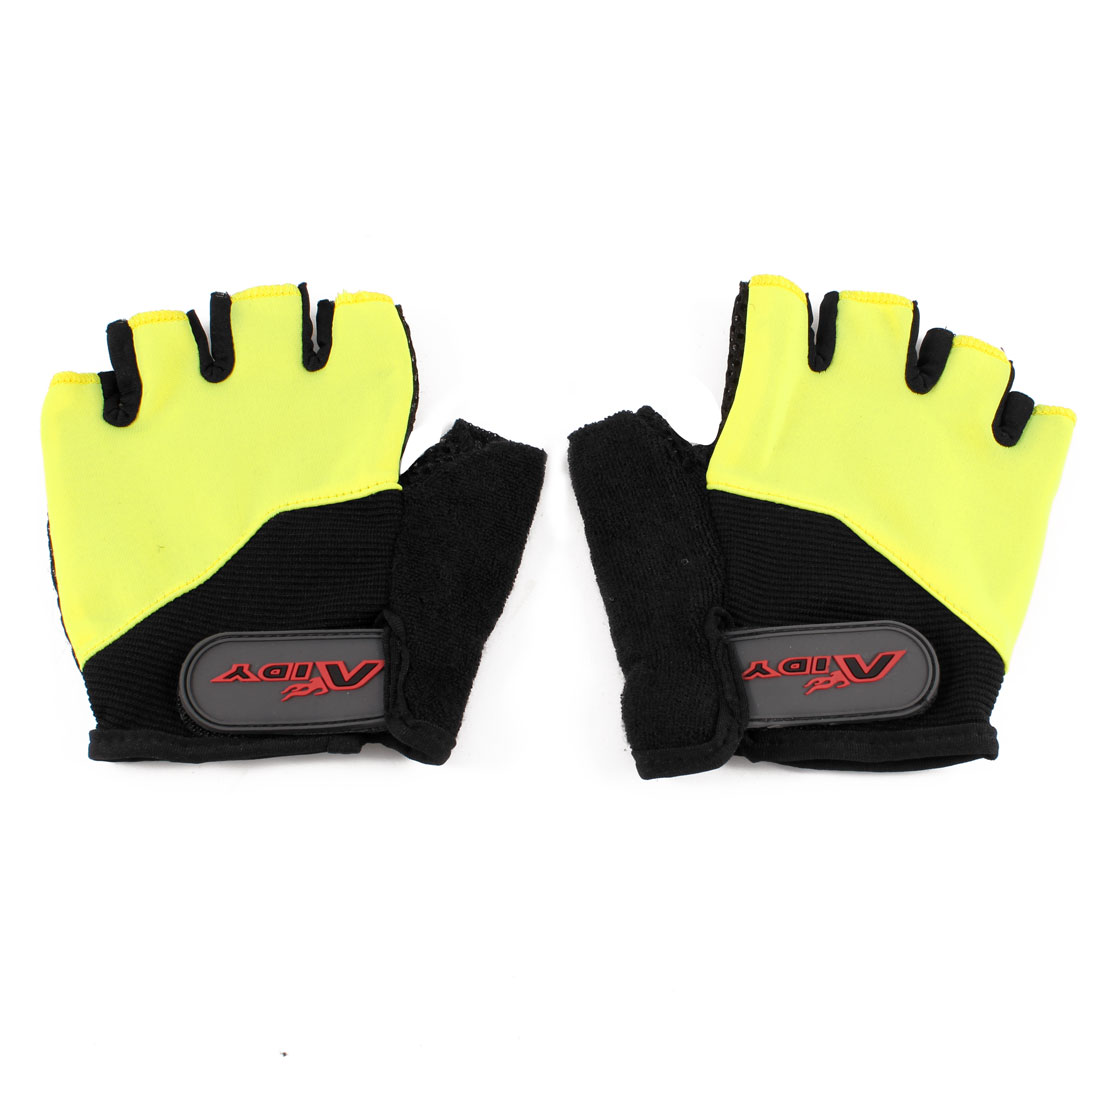 Pair Outdoors Yellow Black Half Finger Breathable Sports Cycling Gloves Size M